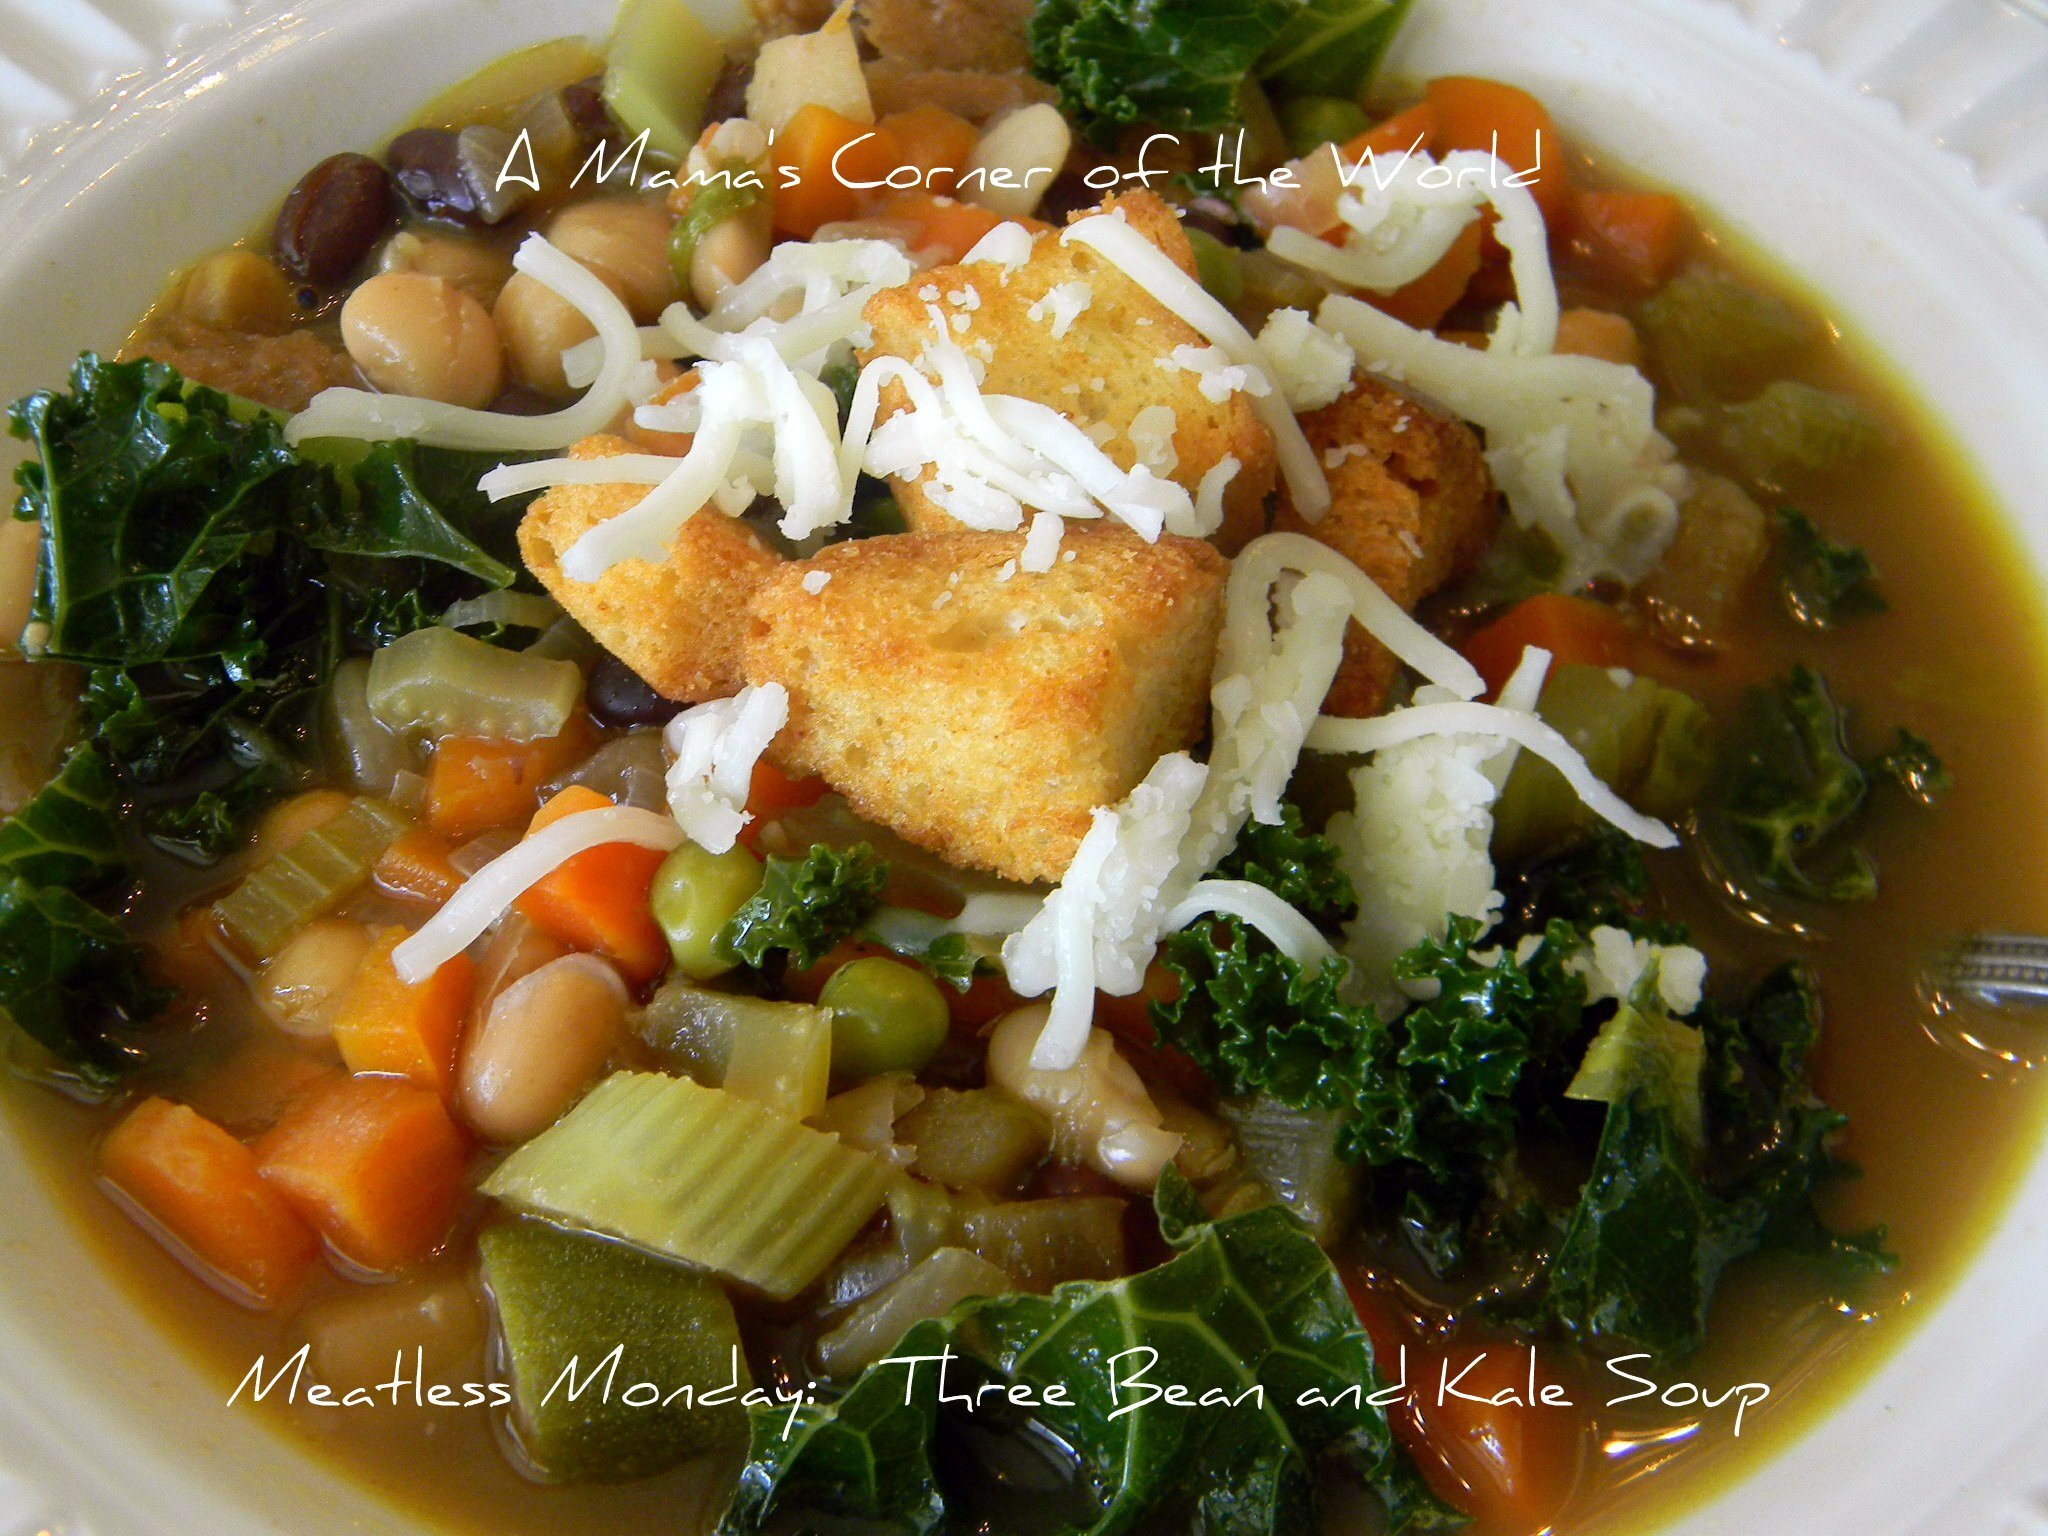 Meatless Monday Recipe Idea:  Three Bean and Kale Vegetable Soup